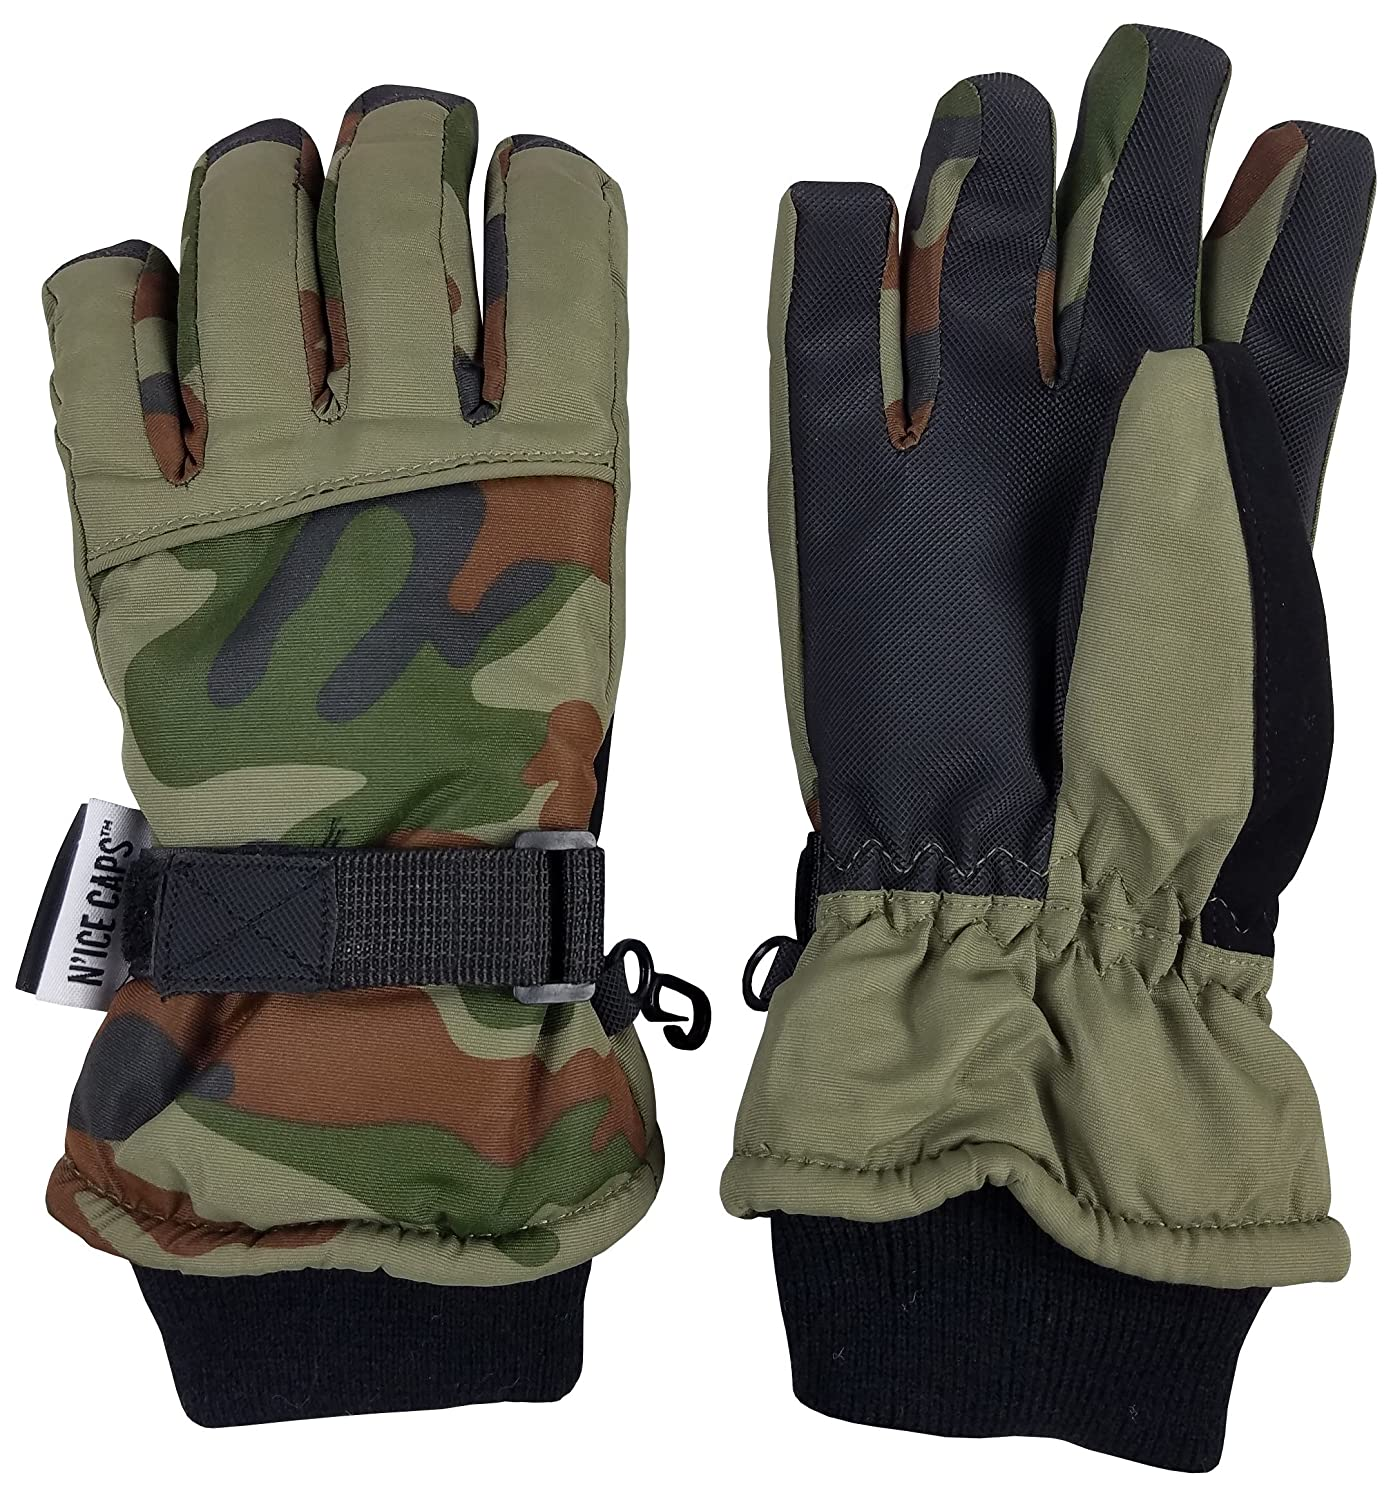 NIce Caps Boys Cold Weather Camo Gloves Waterproof Insulated